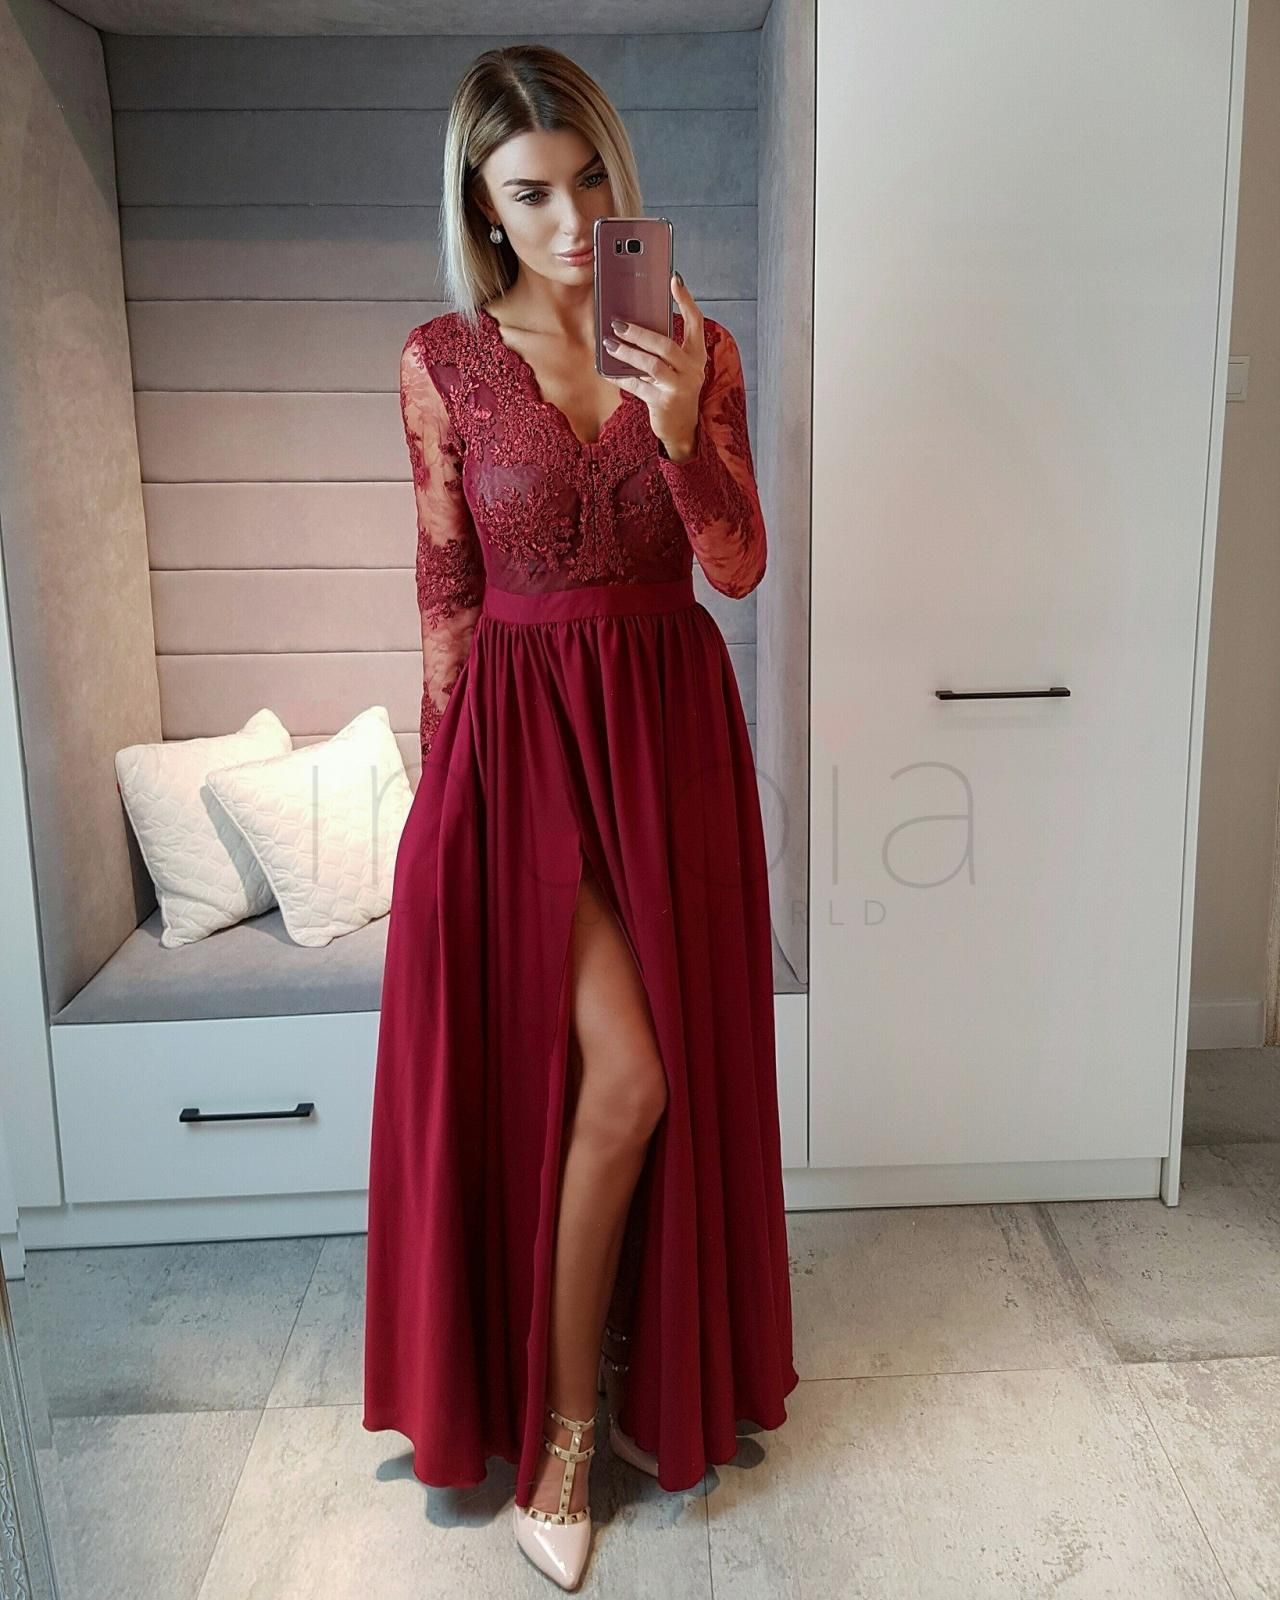 Long Sleeves Wine Red Prom Dress Formal Occasion Dress Burgundy Prom Dresses Blue Party Dresses Evening Gowns Formal Occasion Dress Burgundy Prom Dress Occasion Dresses [ 1600 x 1280 Pixel ]